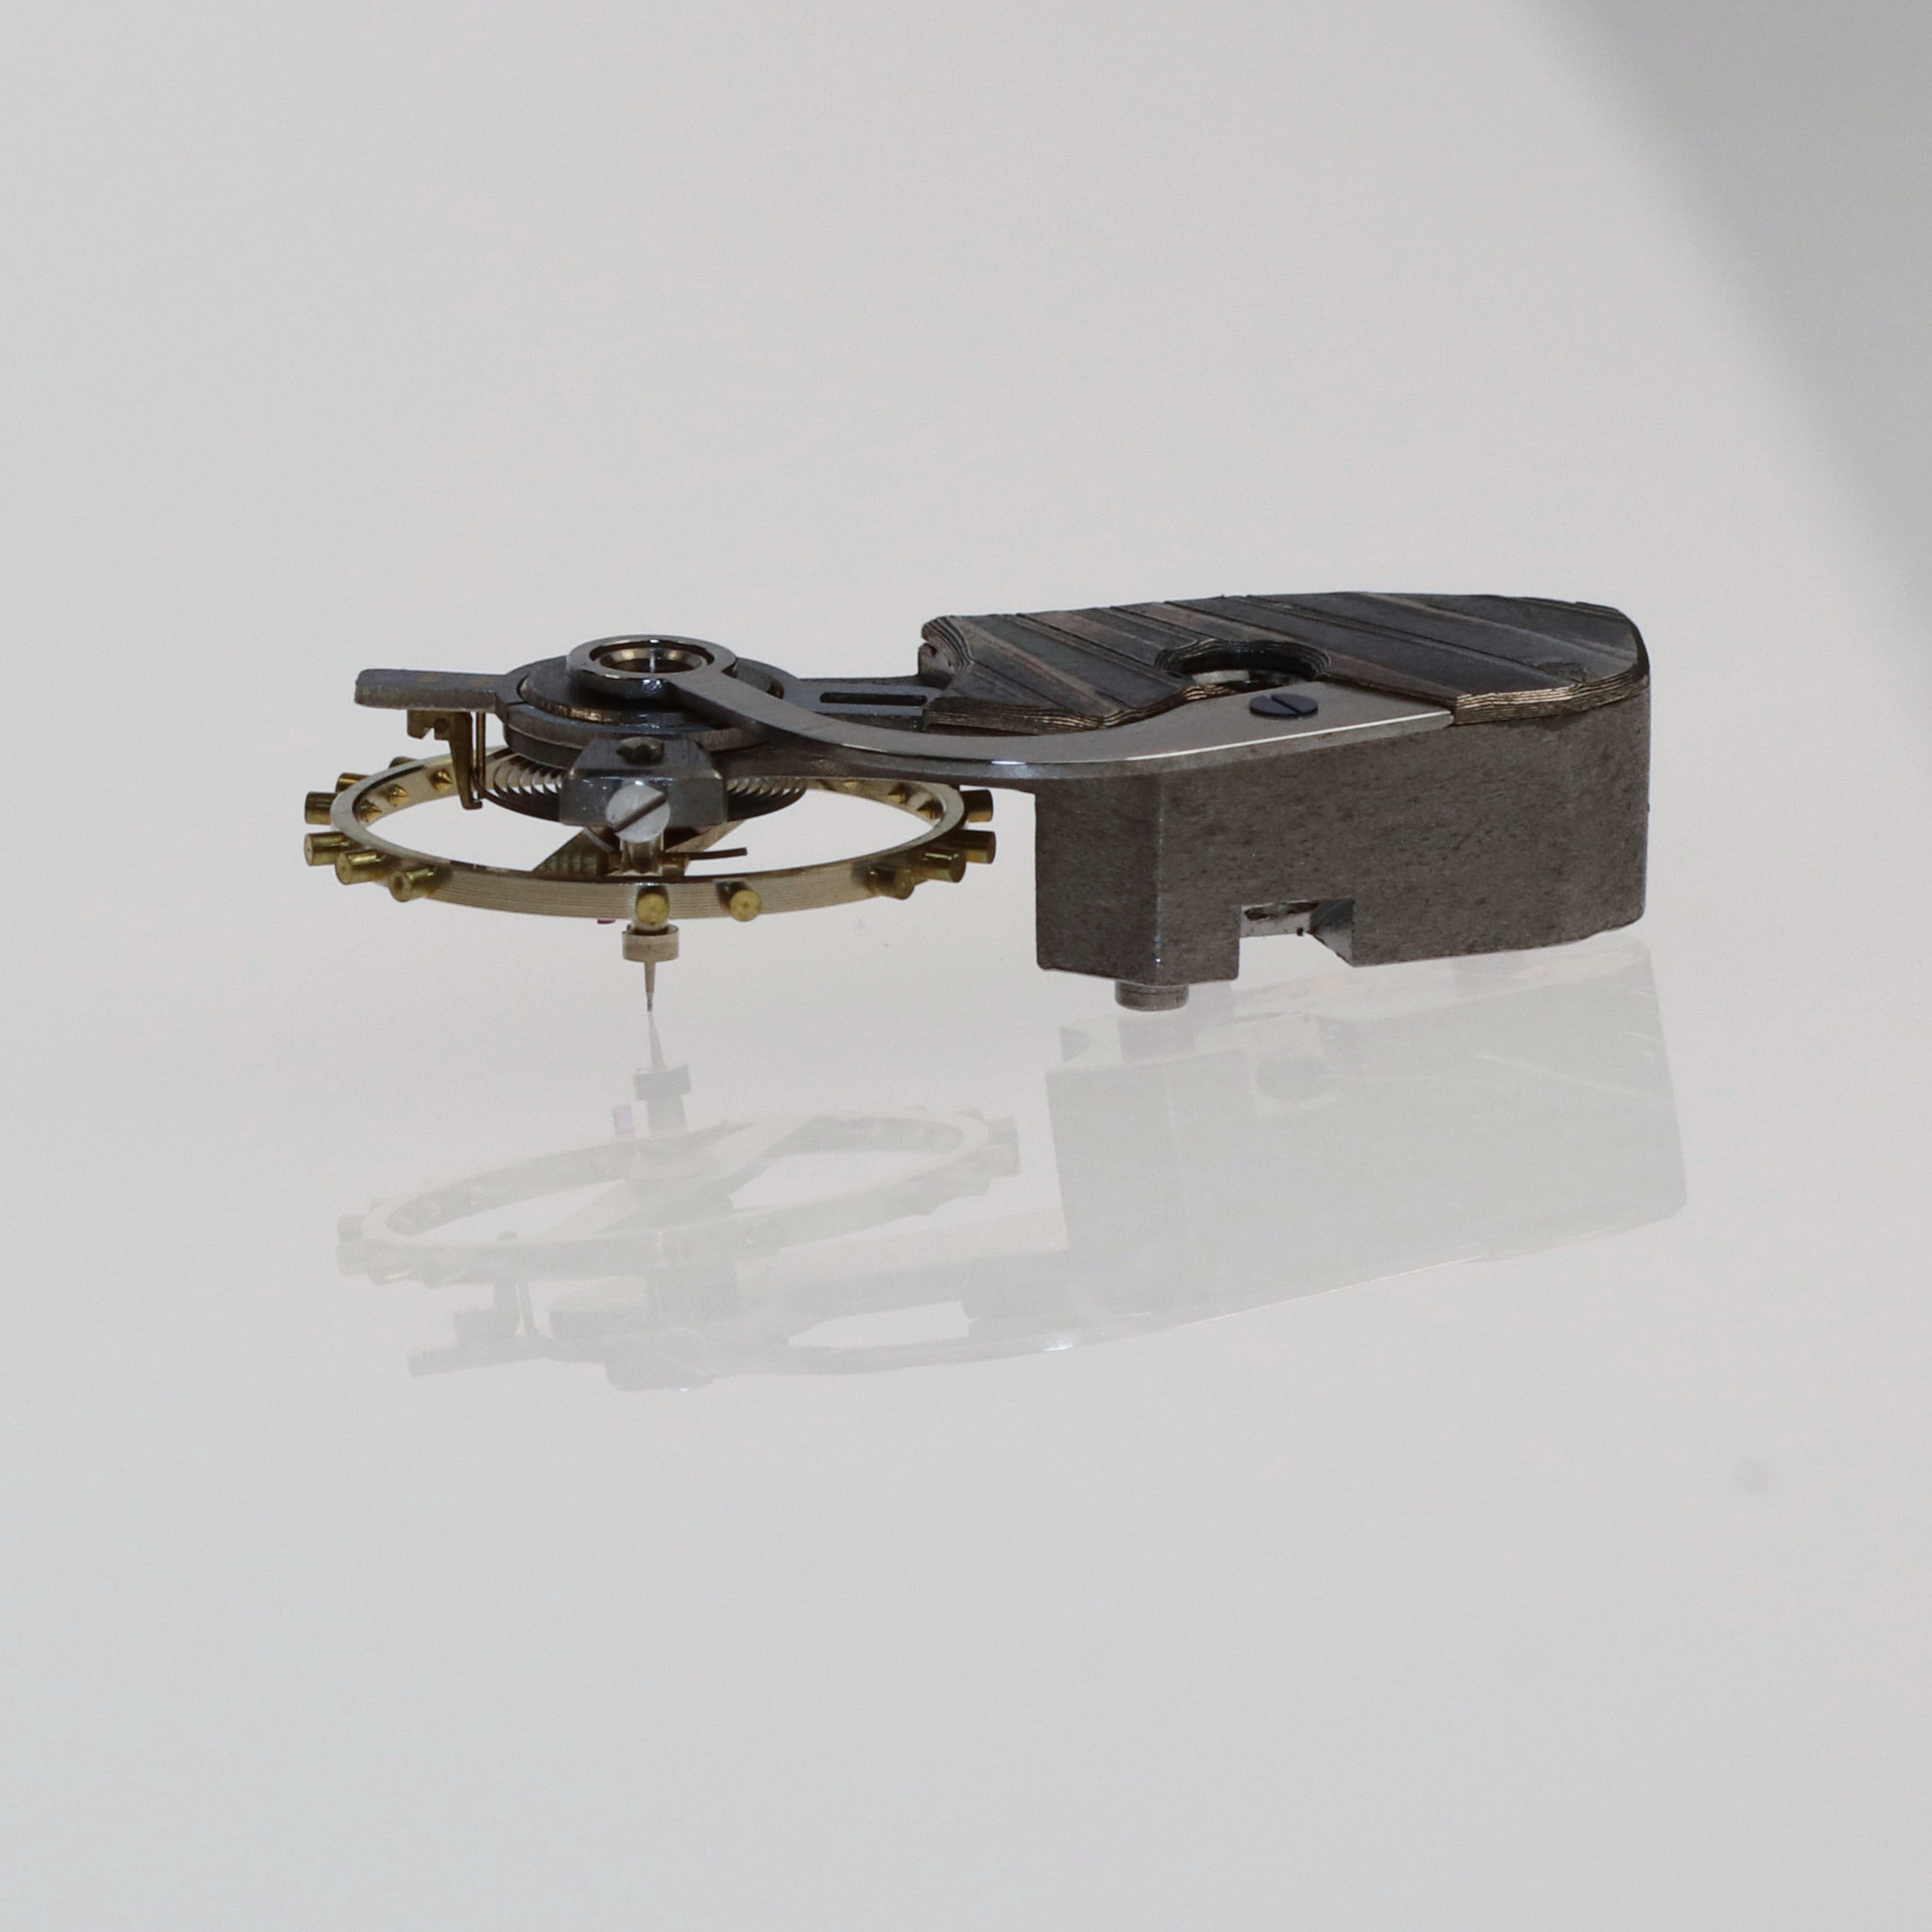 Balance cock profile emphasizing the volume of the watch components